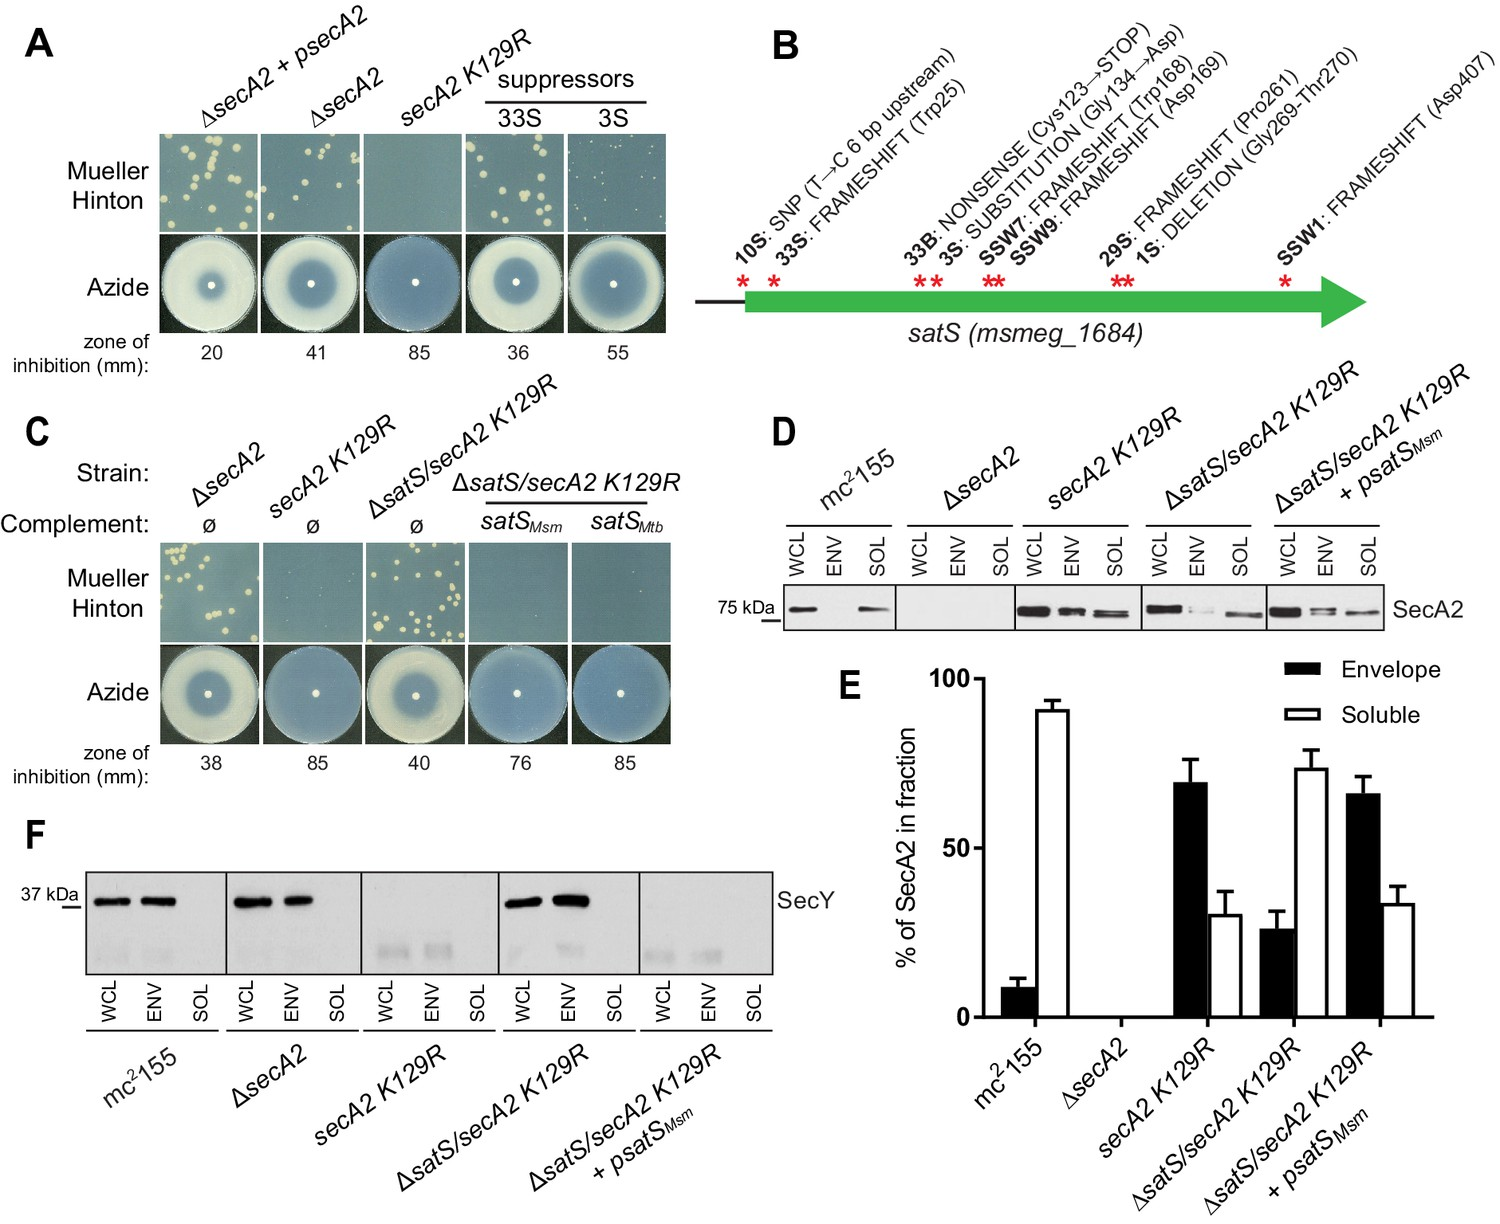 Mycobacterium tuberculosis SatS is a chaperone for the SecA2 protein